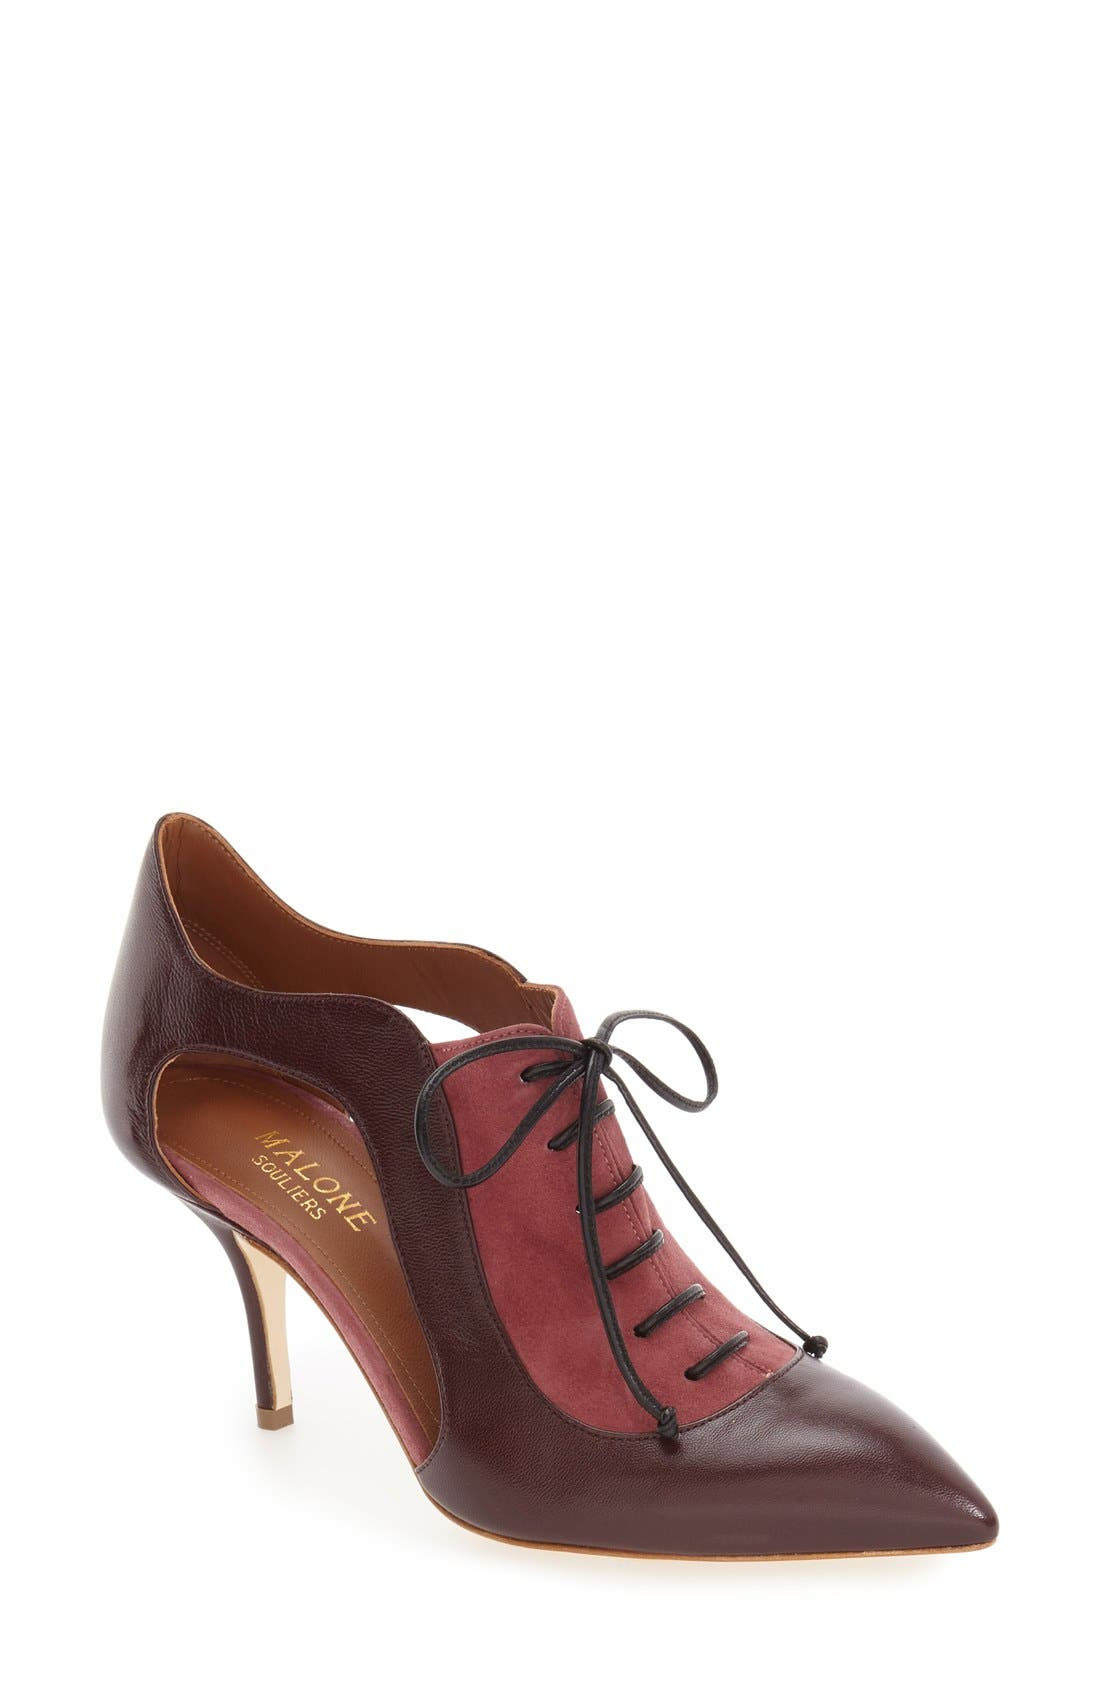 Alternate Image 1 Selected - Malone Souliers 'Lorraine' Lace-Up Pump (Women)